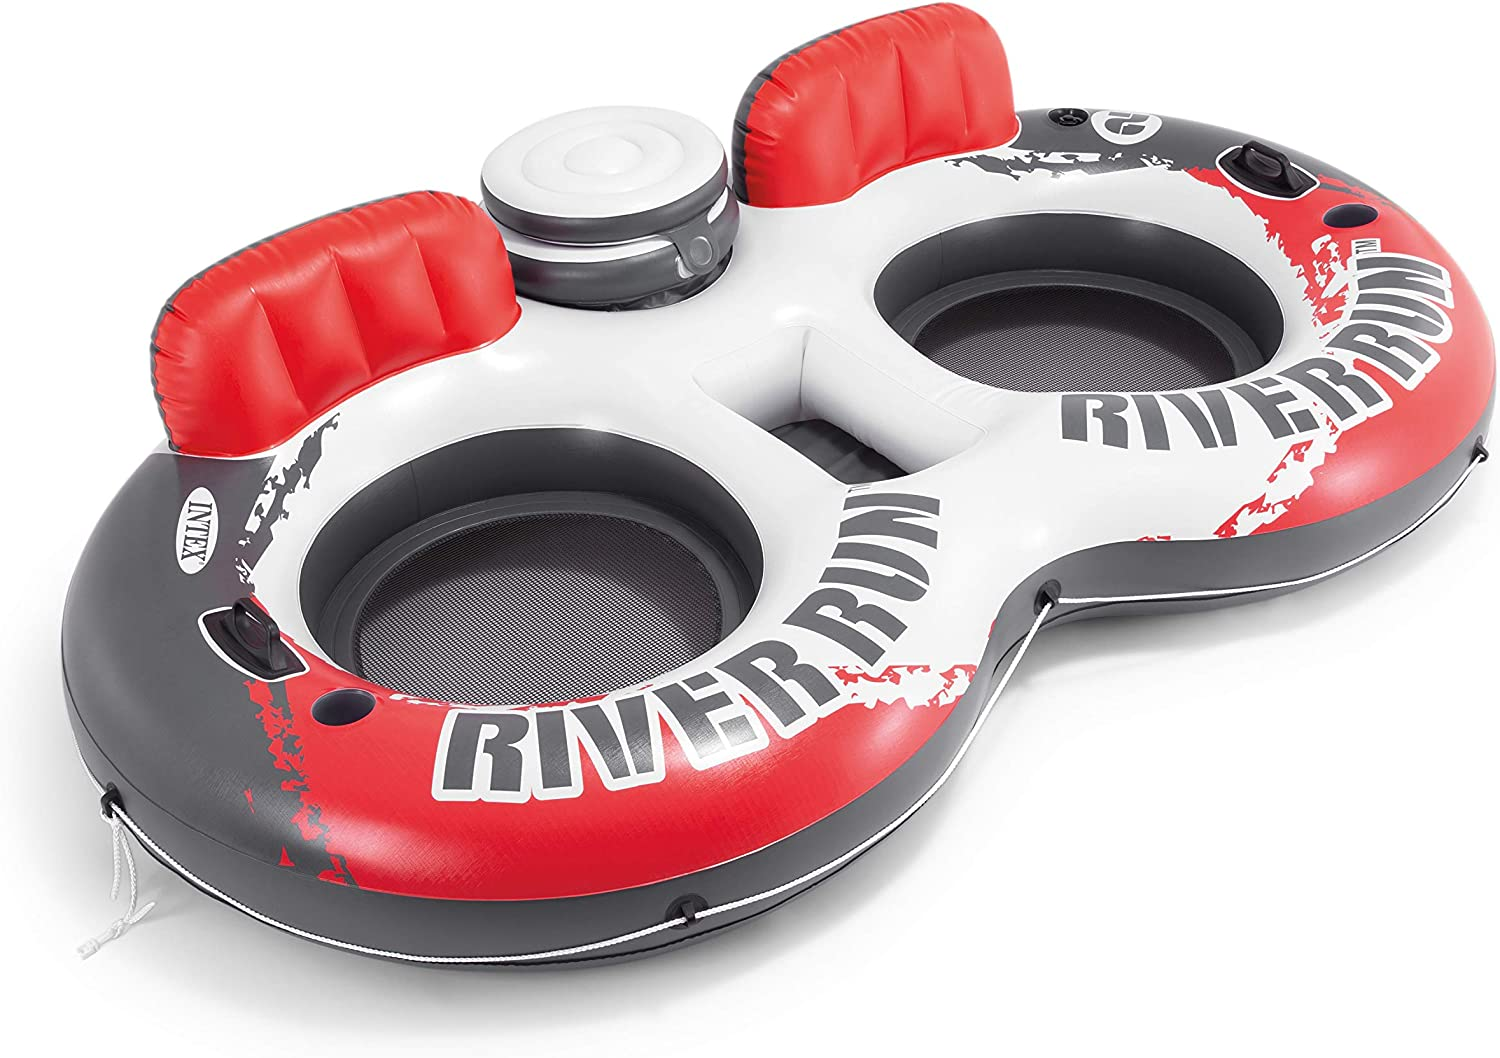 2 Pack Intex American Flag 2 Person Float w// River Run 1 Person Tube 2 Pack